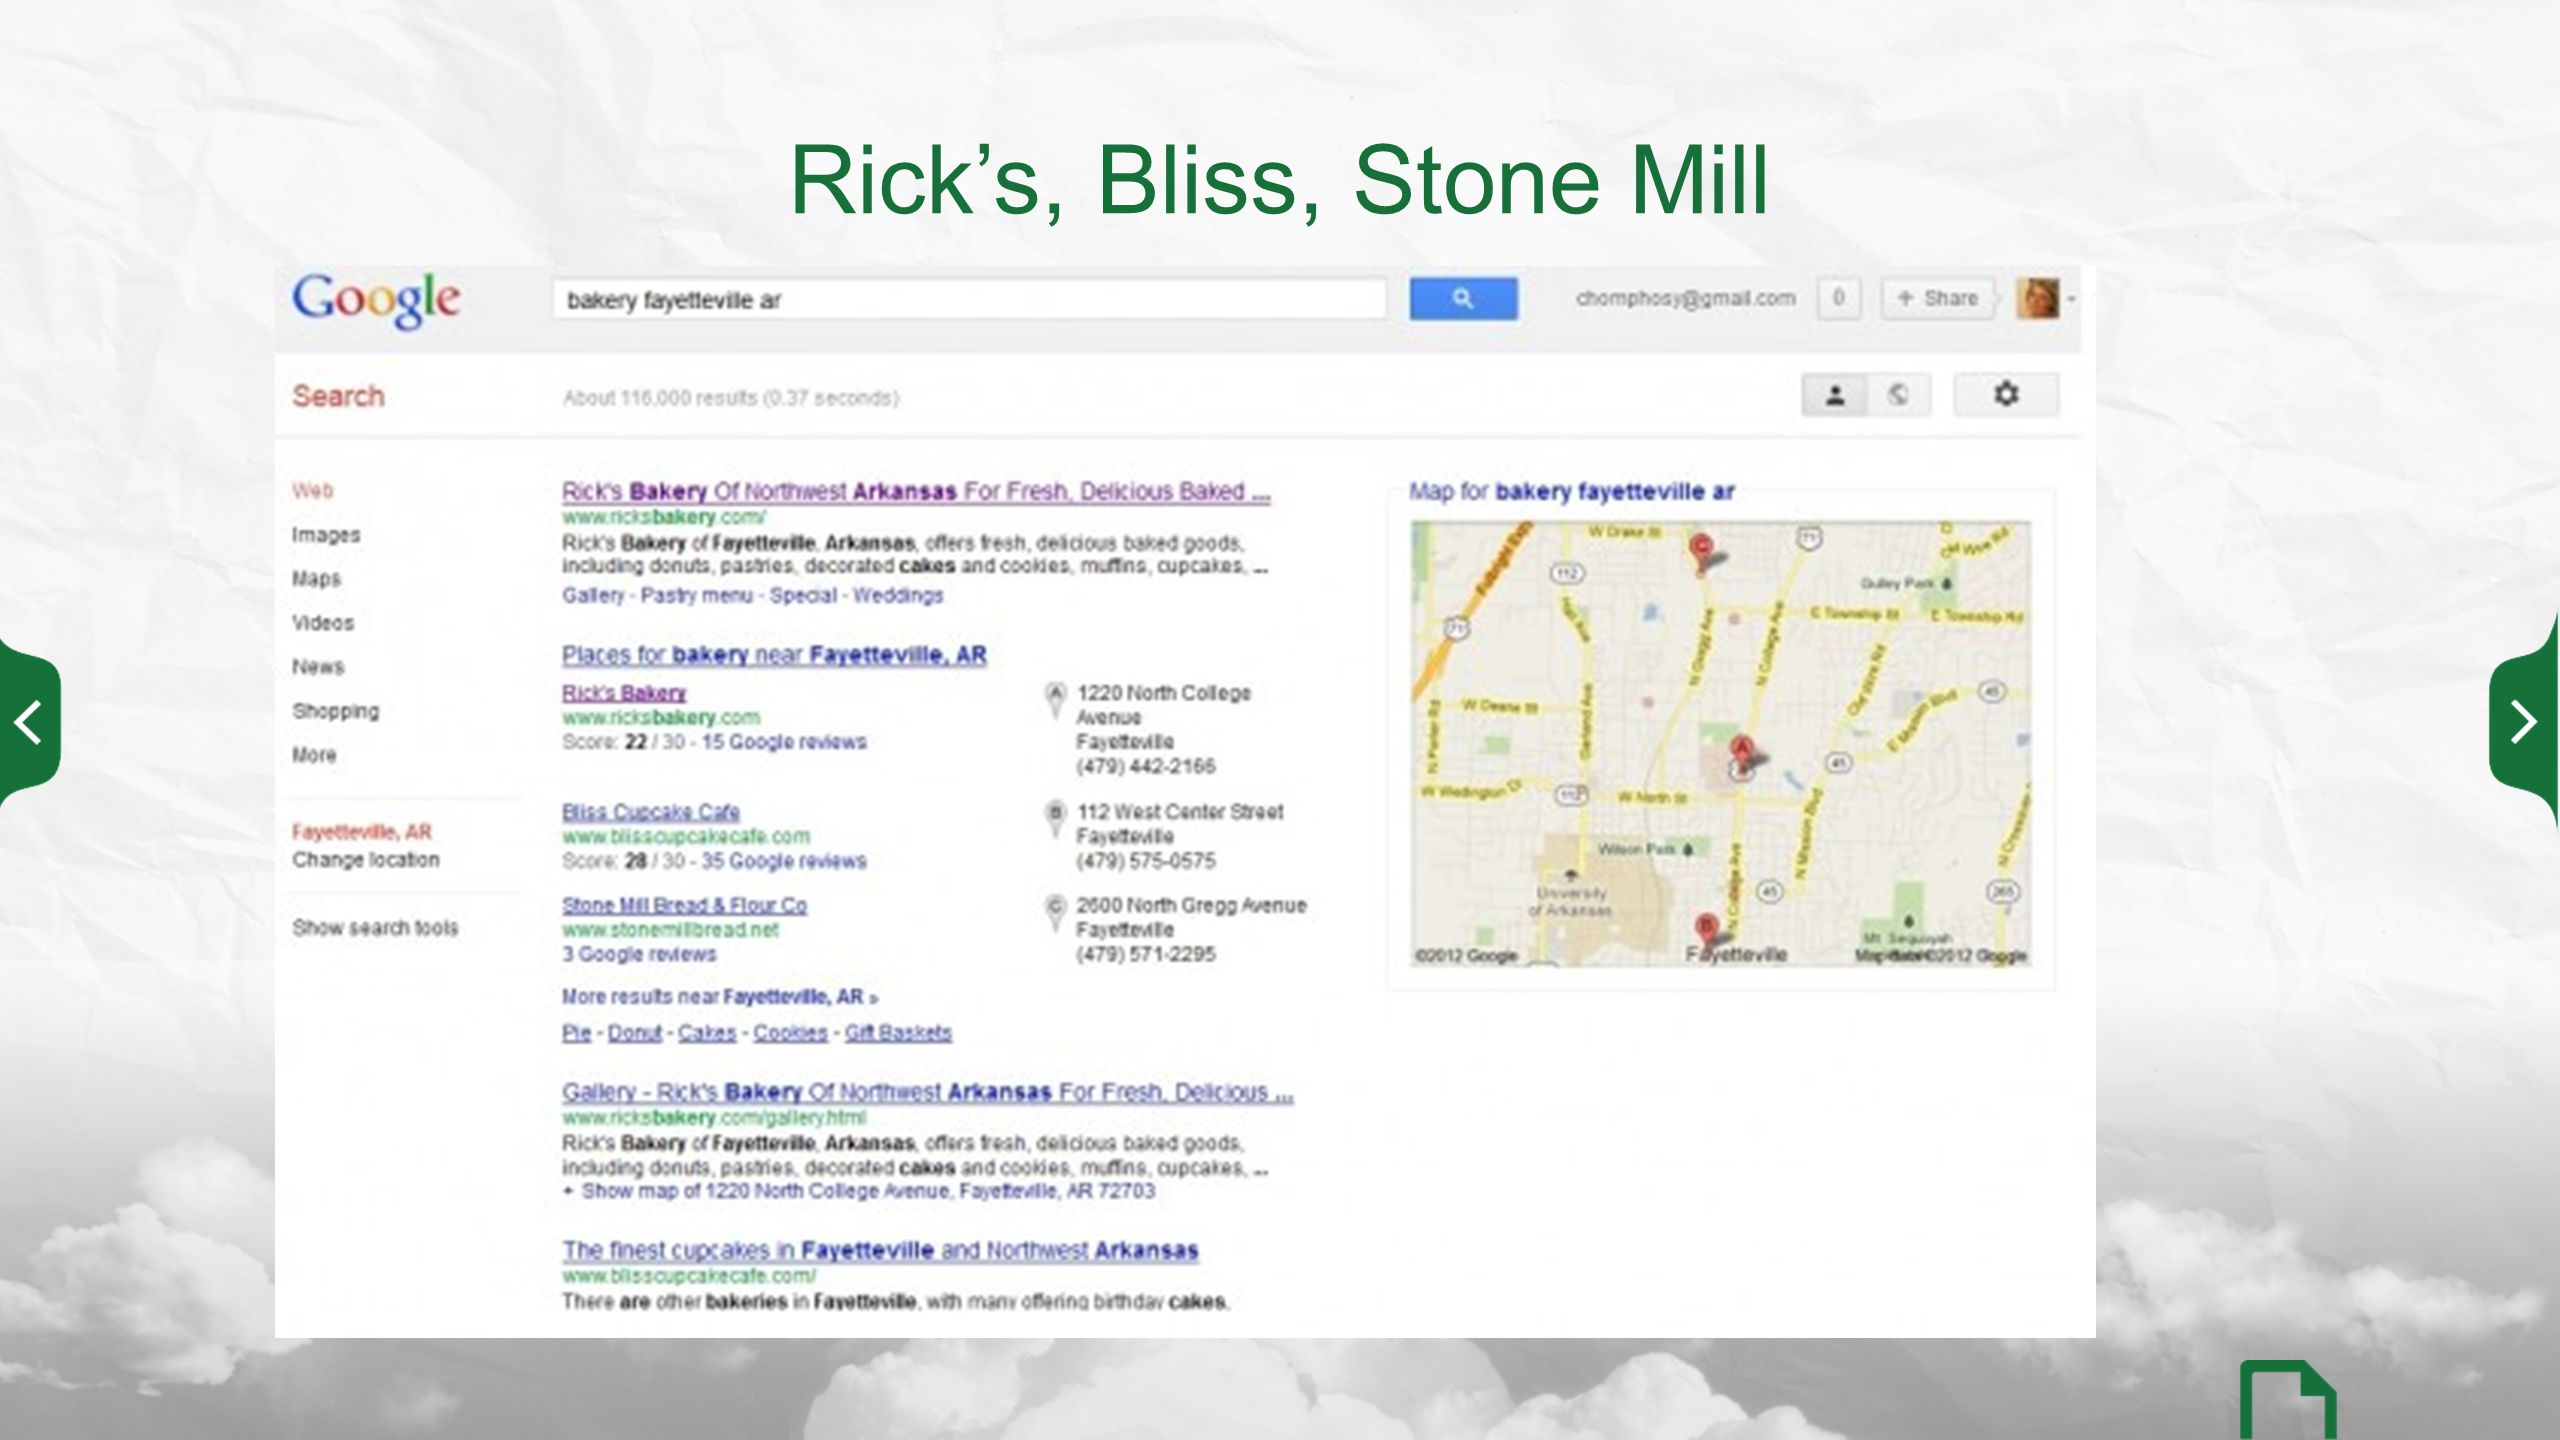 Rick's, Bliss, Stone Mill